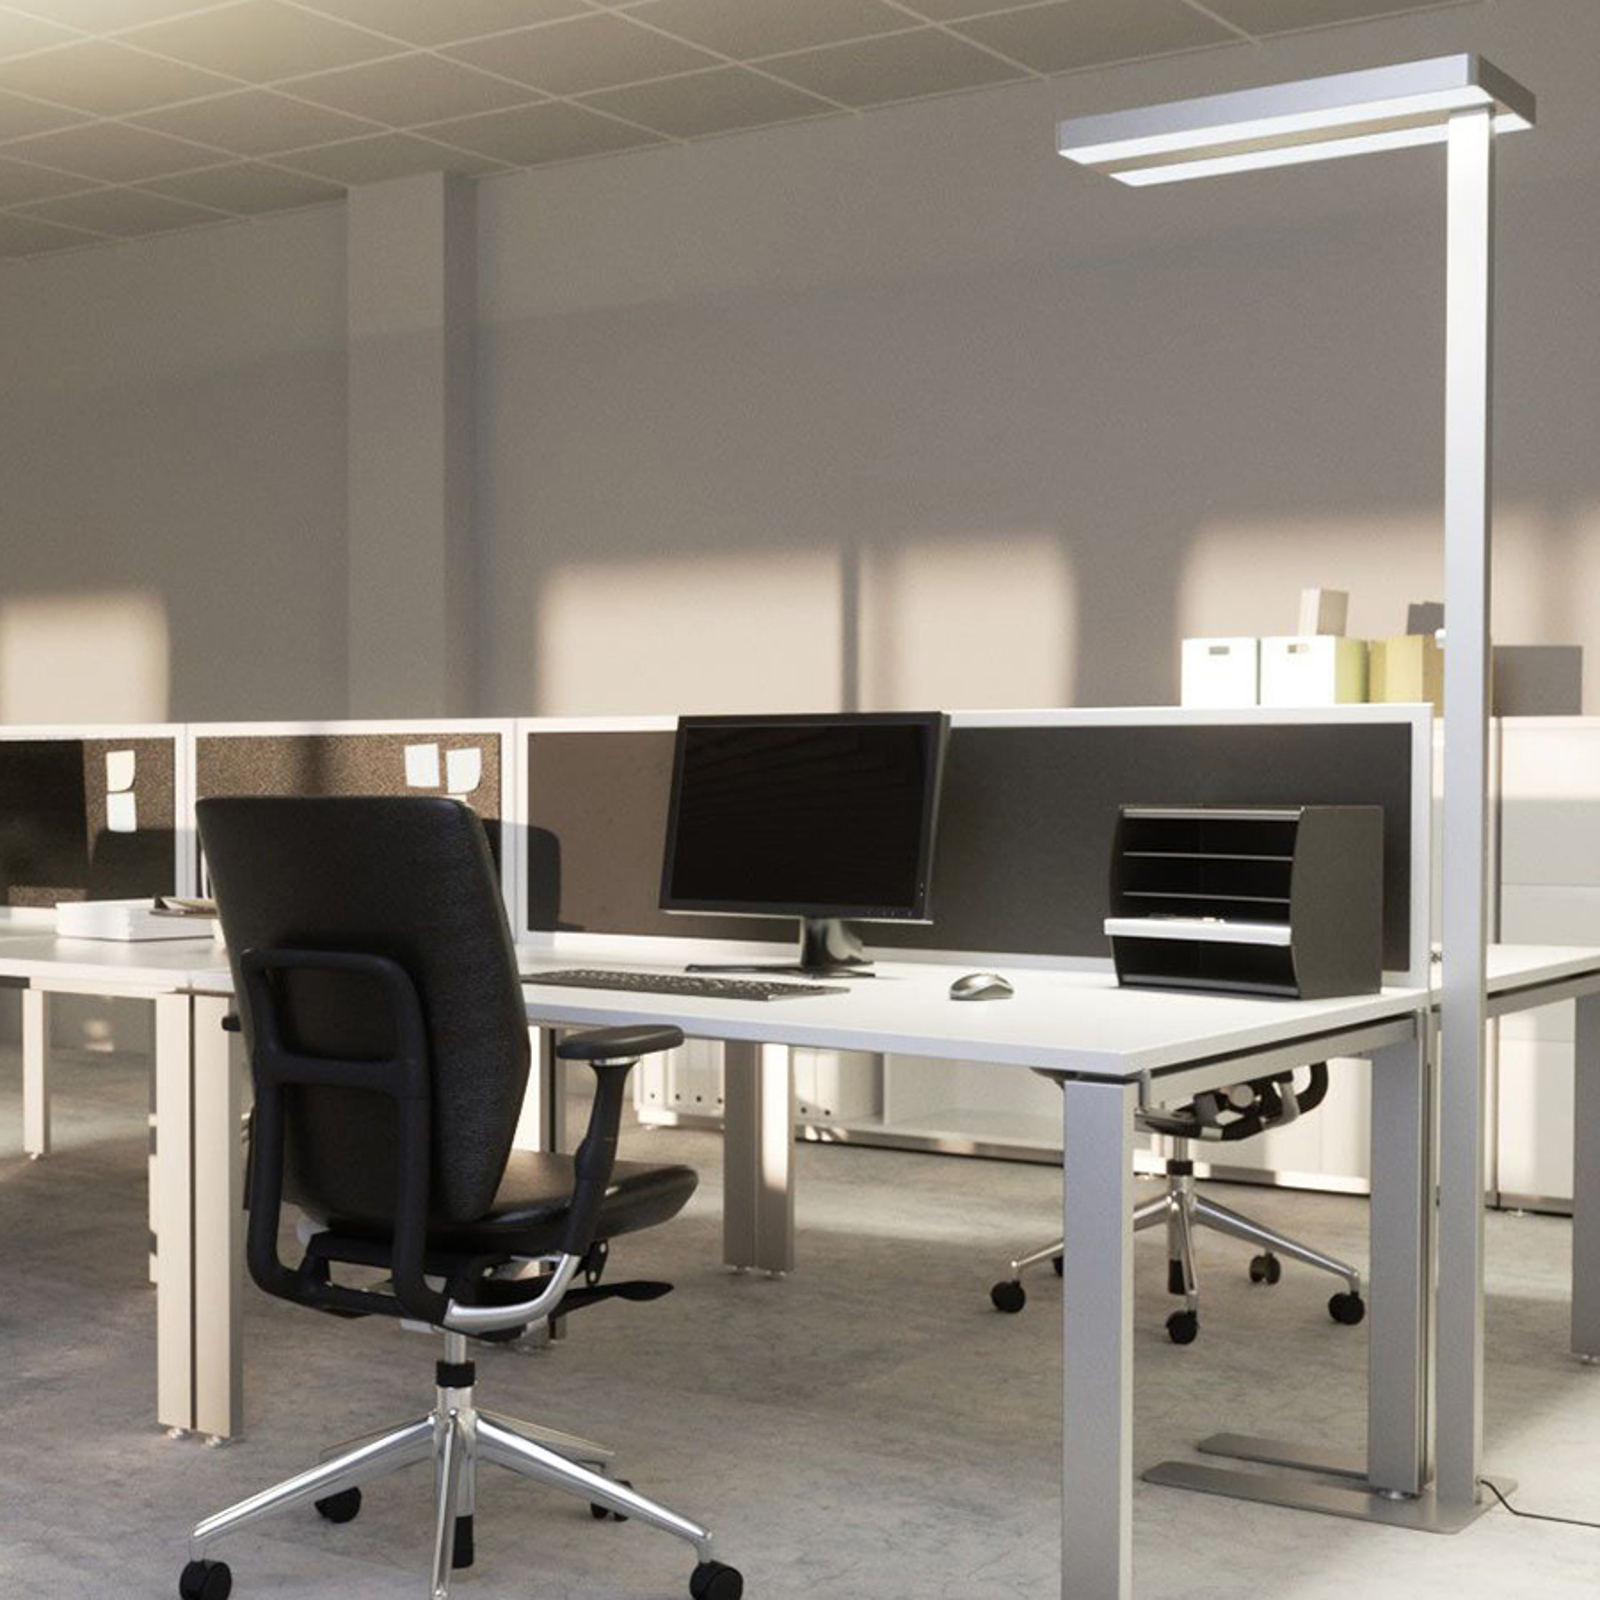 Logan LED office floor lamp with dimmer_9968008_1